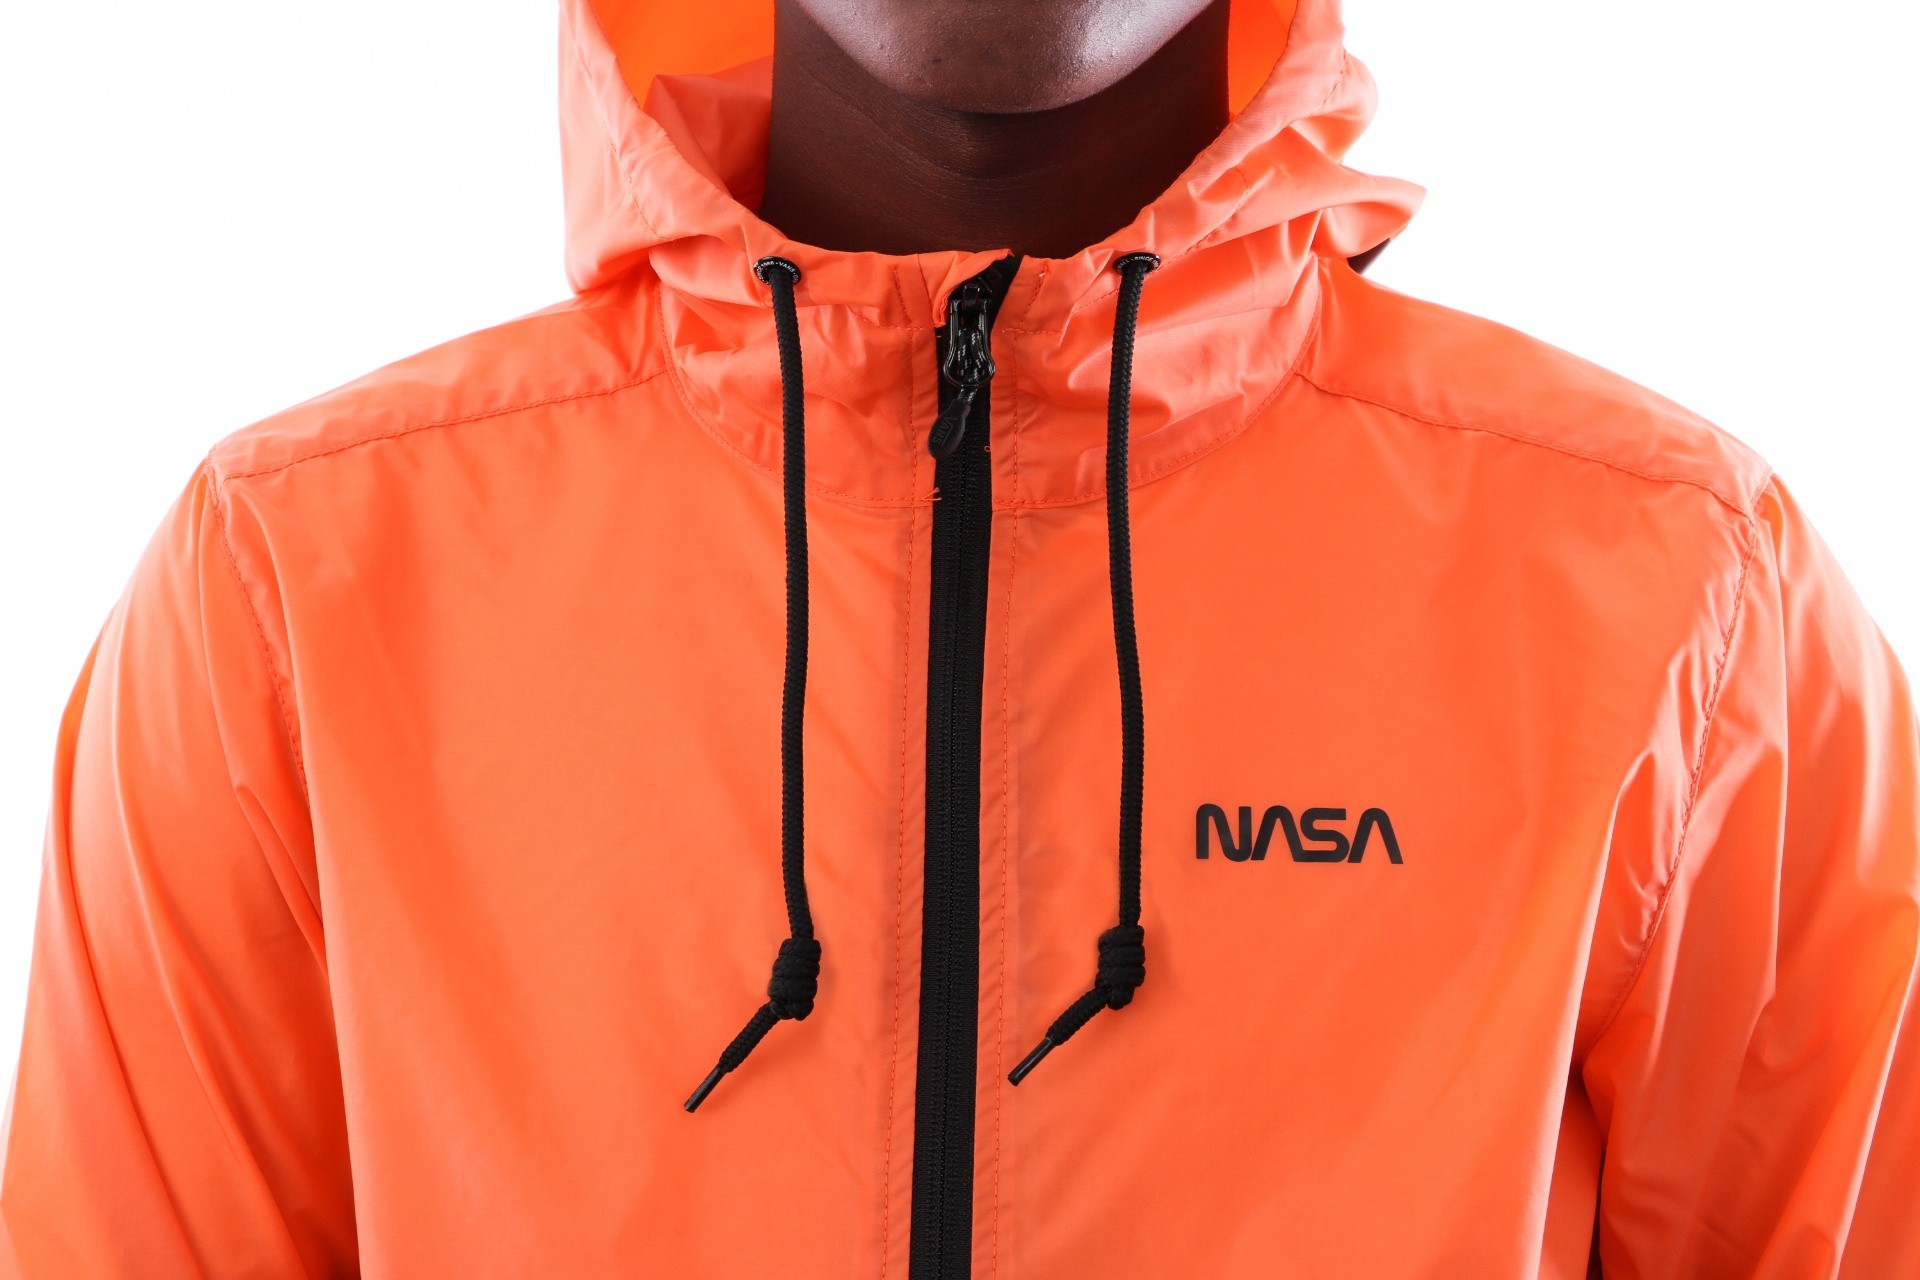 jas Britain VANS SPACE VA3W7AXH7 Vans nl Go ANORAK SPACE ORANGE DIYEH2W9